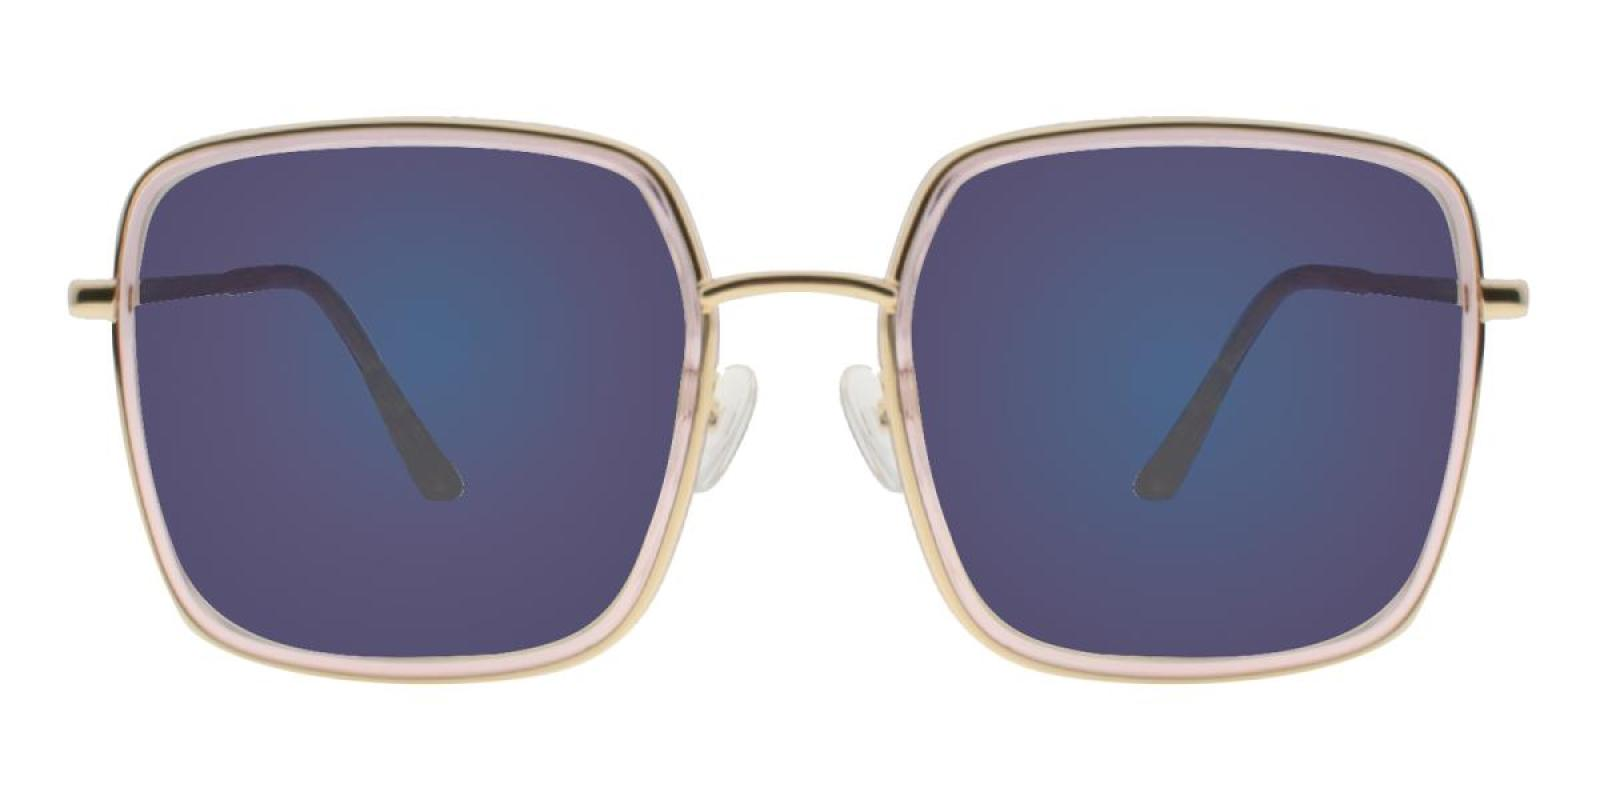 Rongstar-Translucent-Geometric-Combination / Metal / TR-Sunglasses-additional2